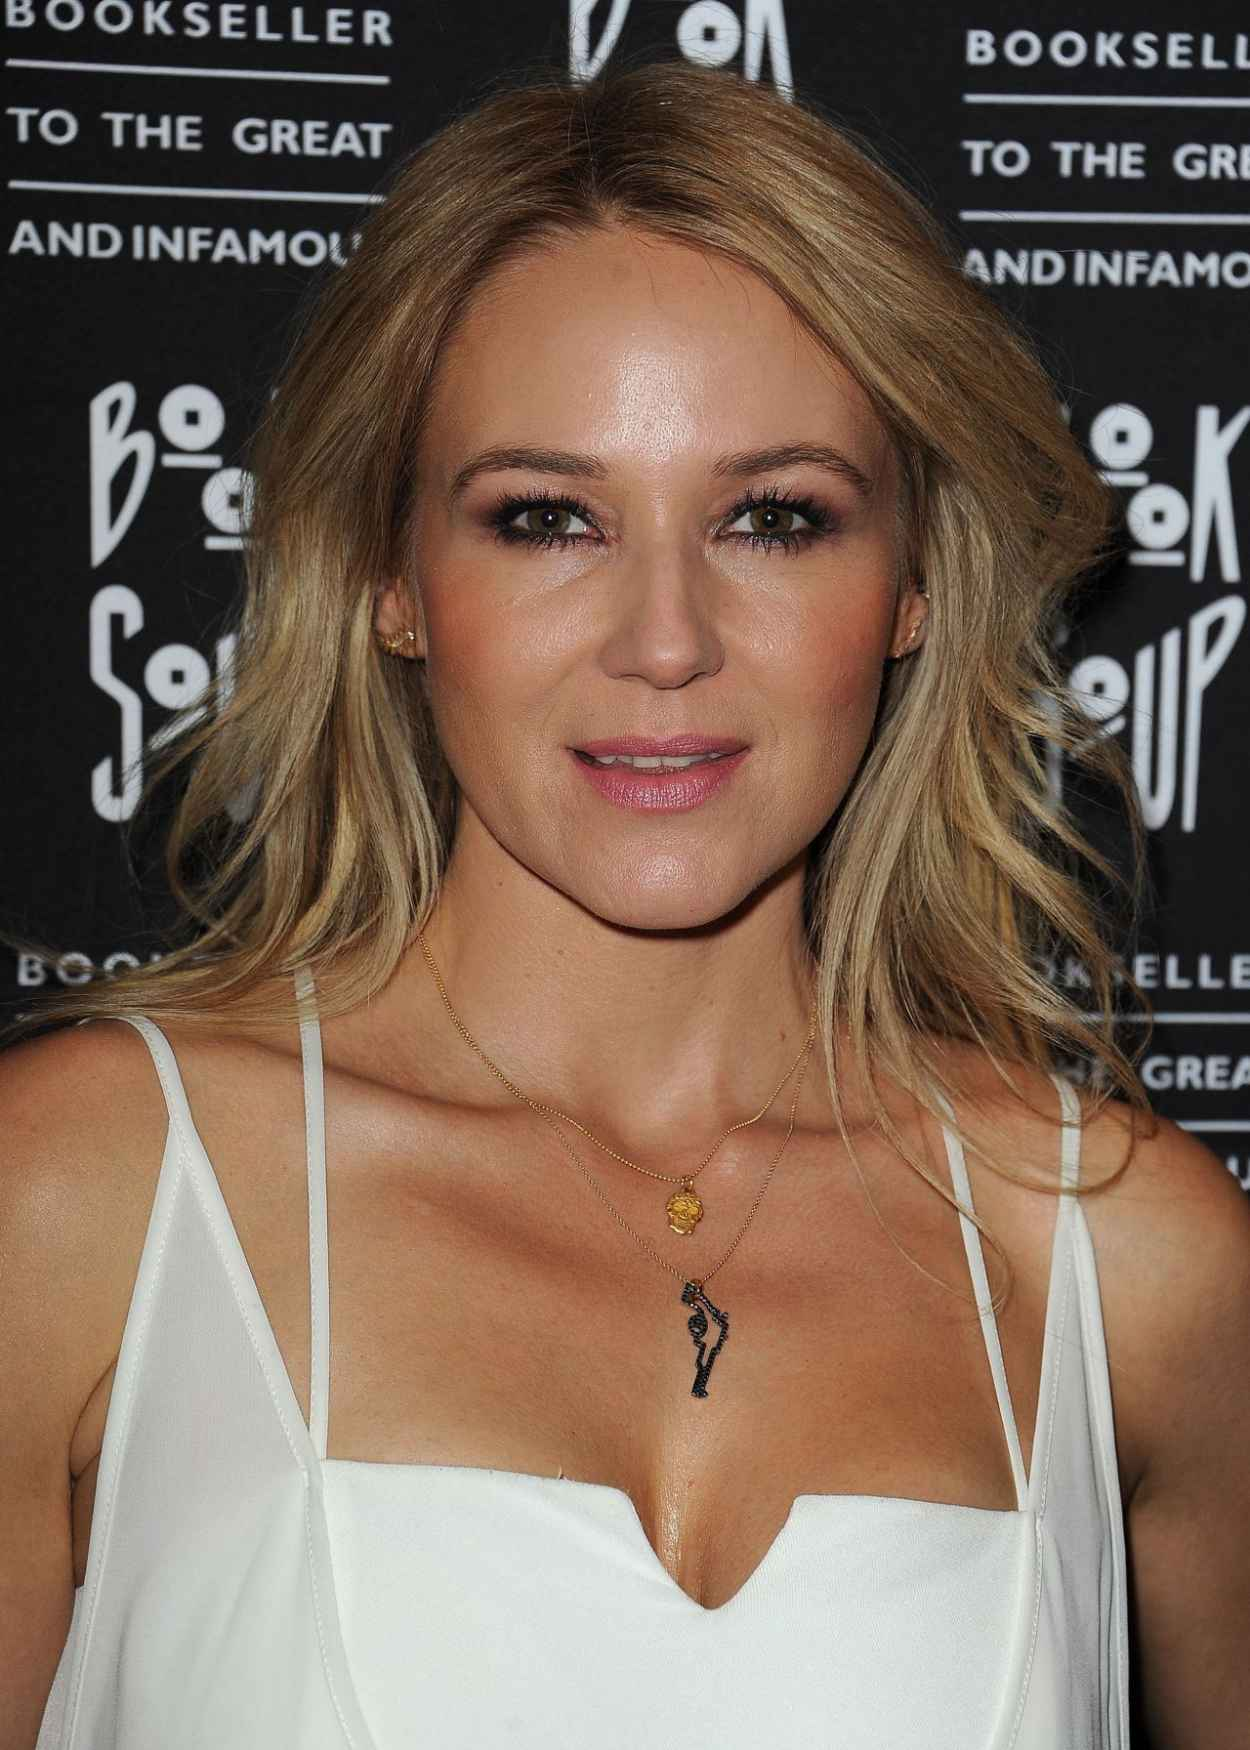 jewel kilcher interview